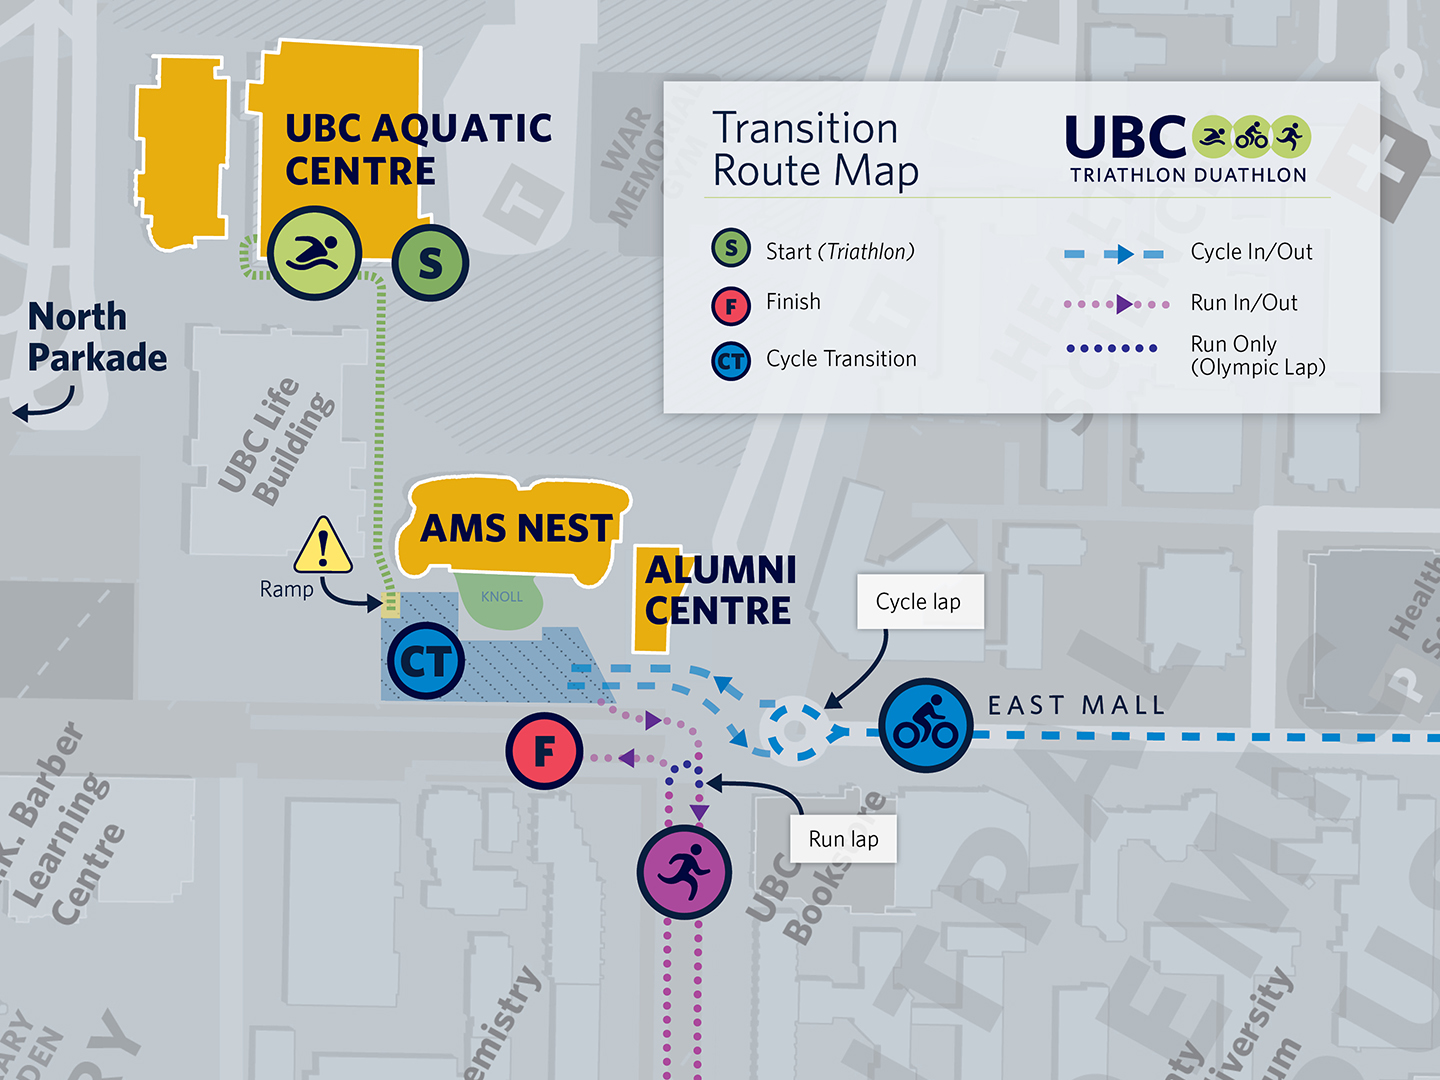 2019 UBC Triathlon Duathlon Transition and Run Lap Map